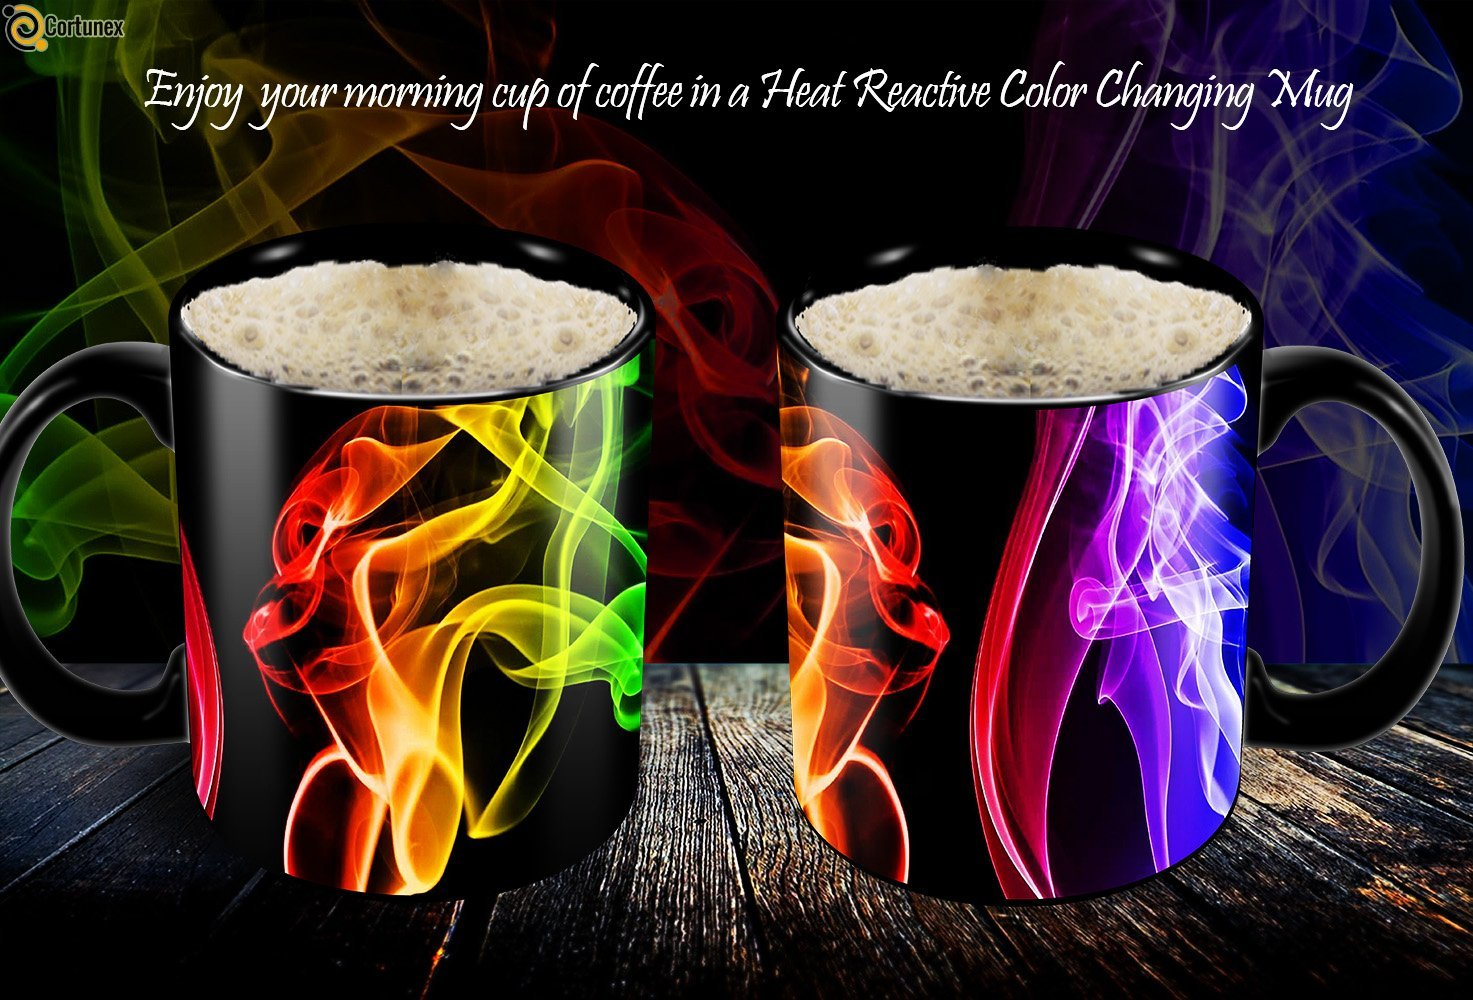 Magic Coffee Mugs Heat Sensitive Color Changing Coffee Mug Good Gift Mug Smoke Design 11oz Funny CoffeeTea Cup 100 B01MS2S8GC 3